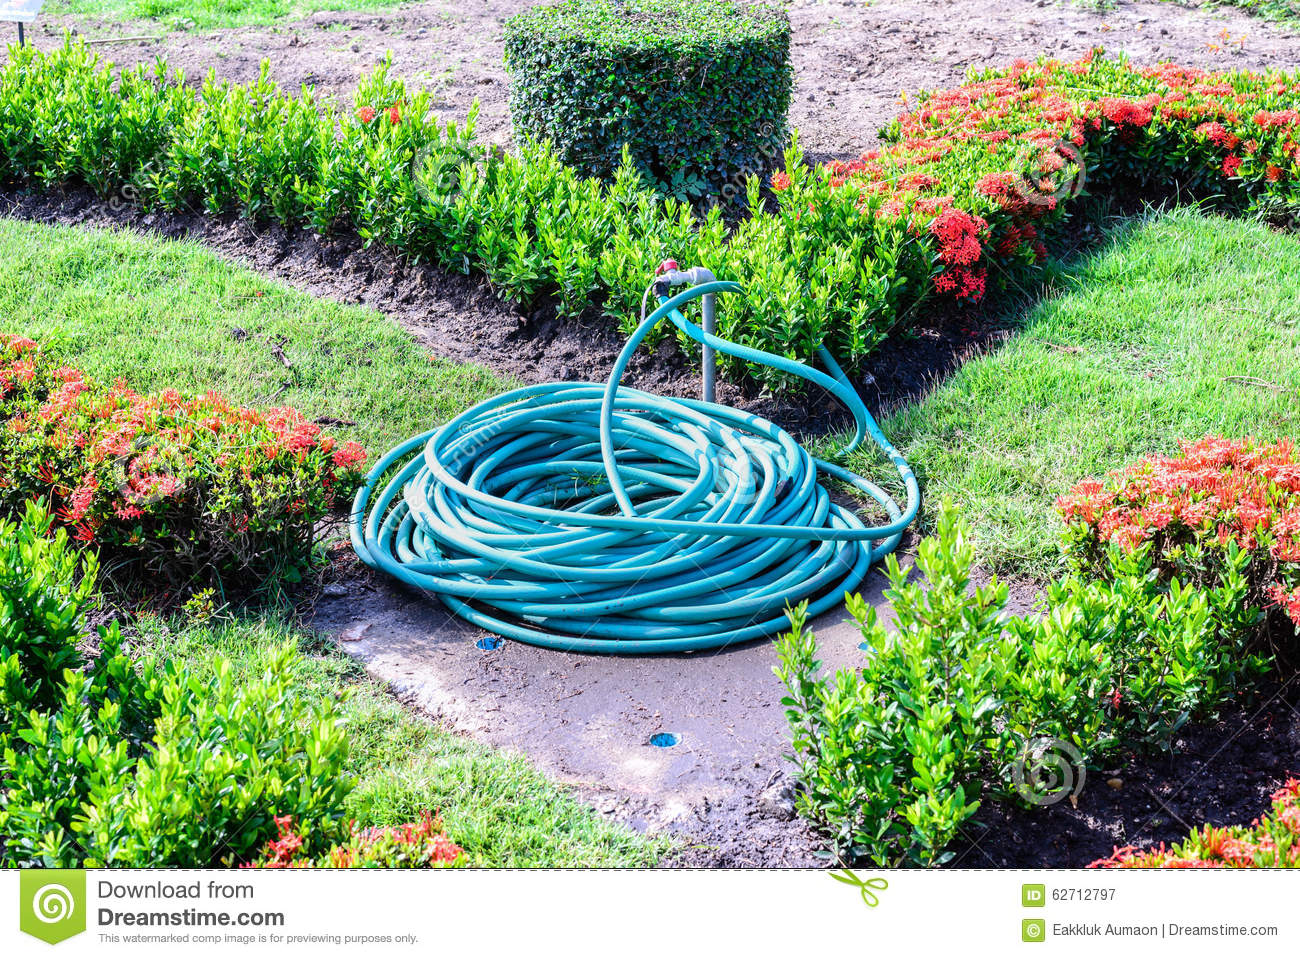 Coiled water hose in garden